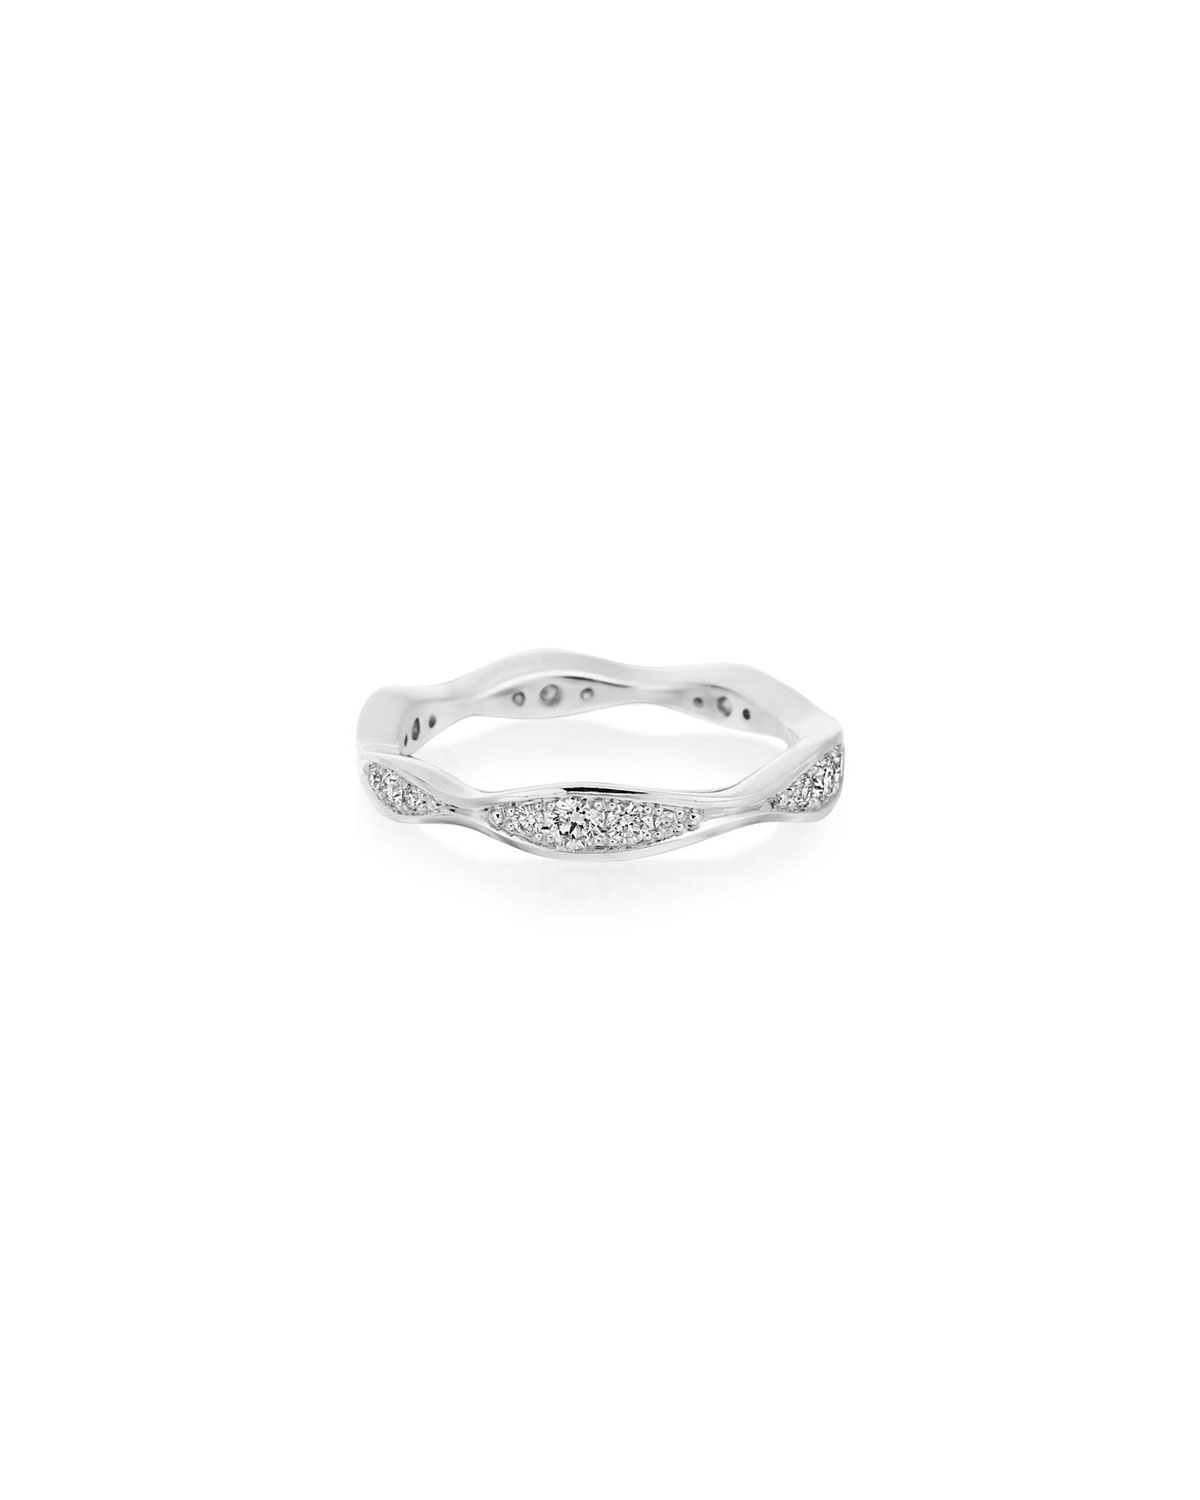 MARIA CANALE 18K White Gold Diamond Narrow Wave Ring